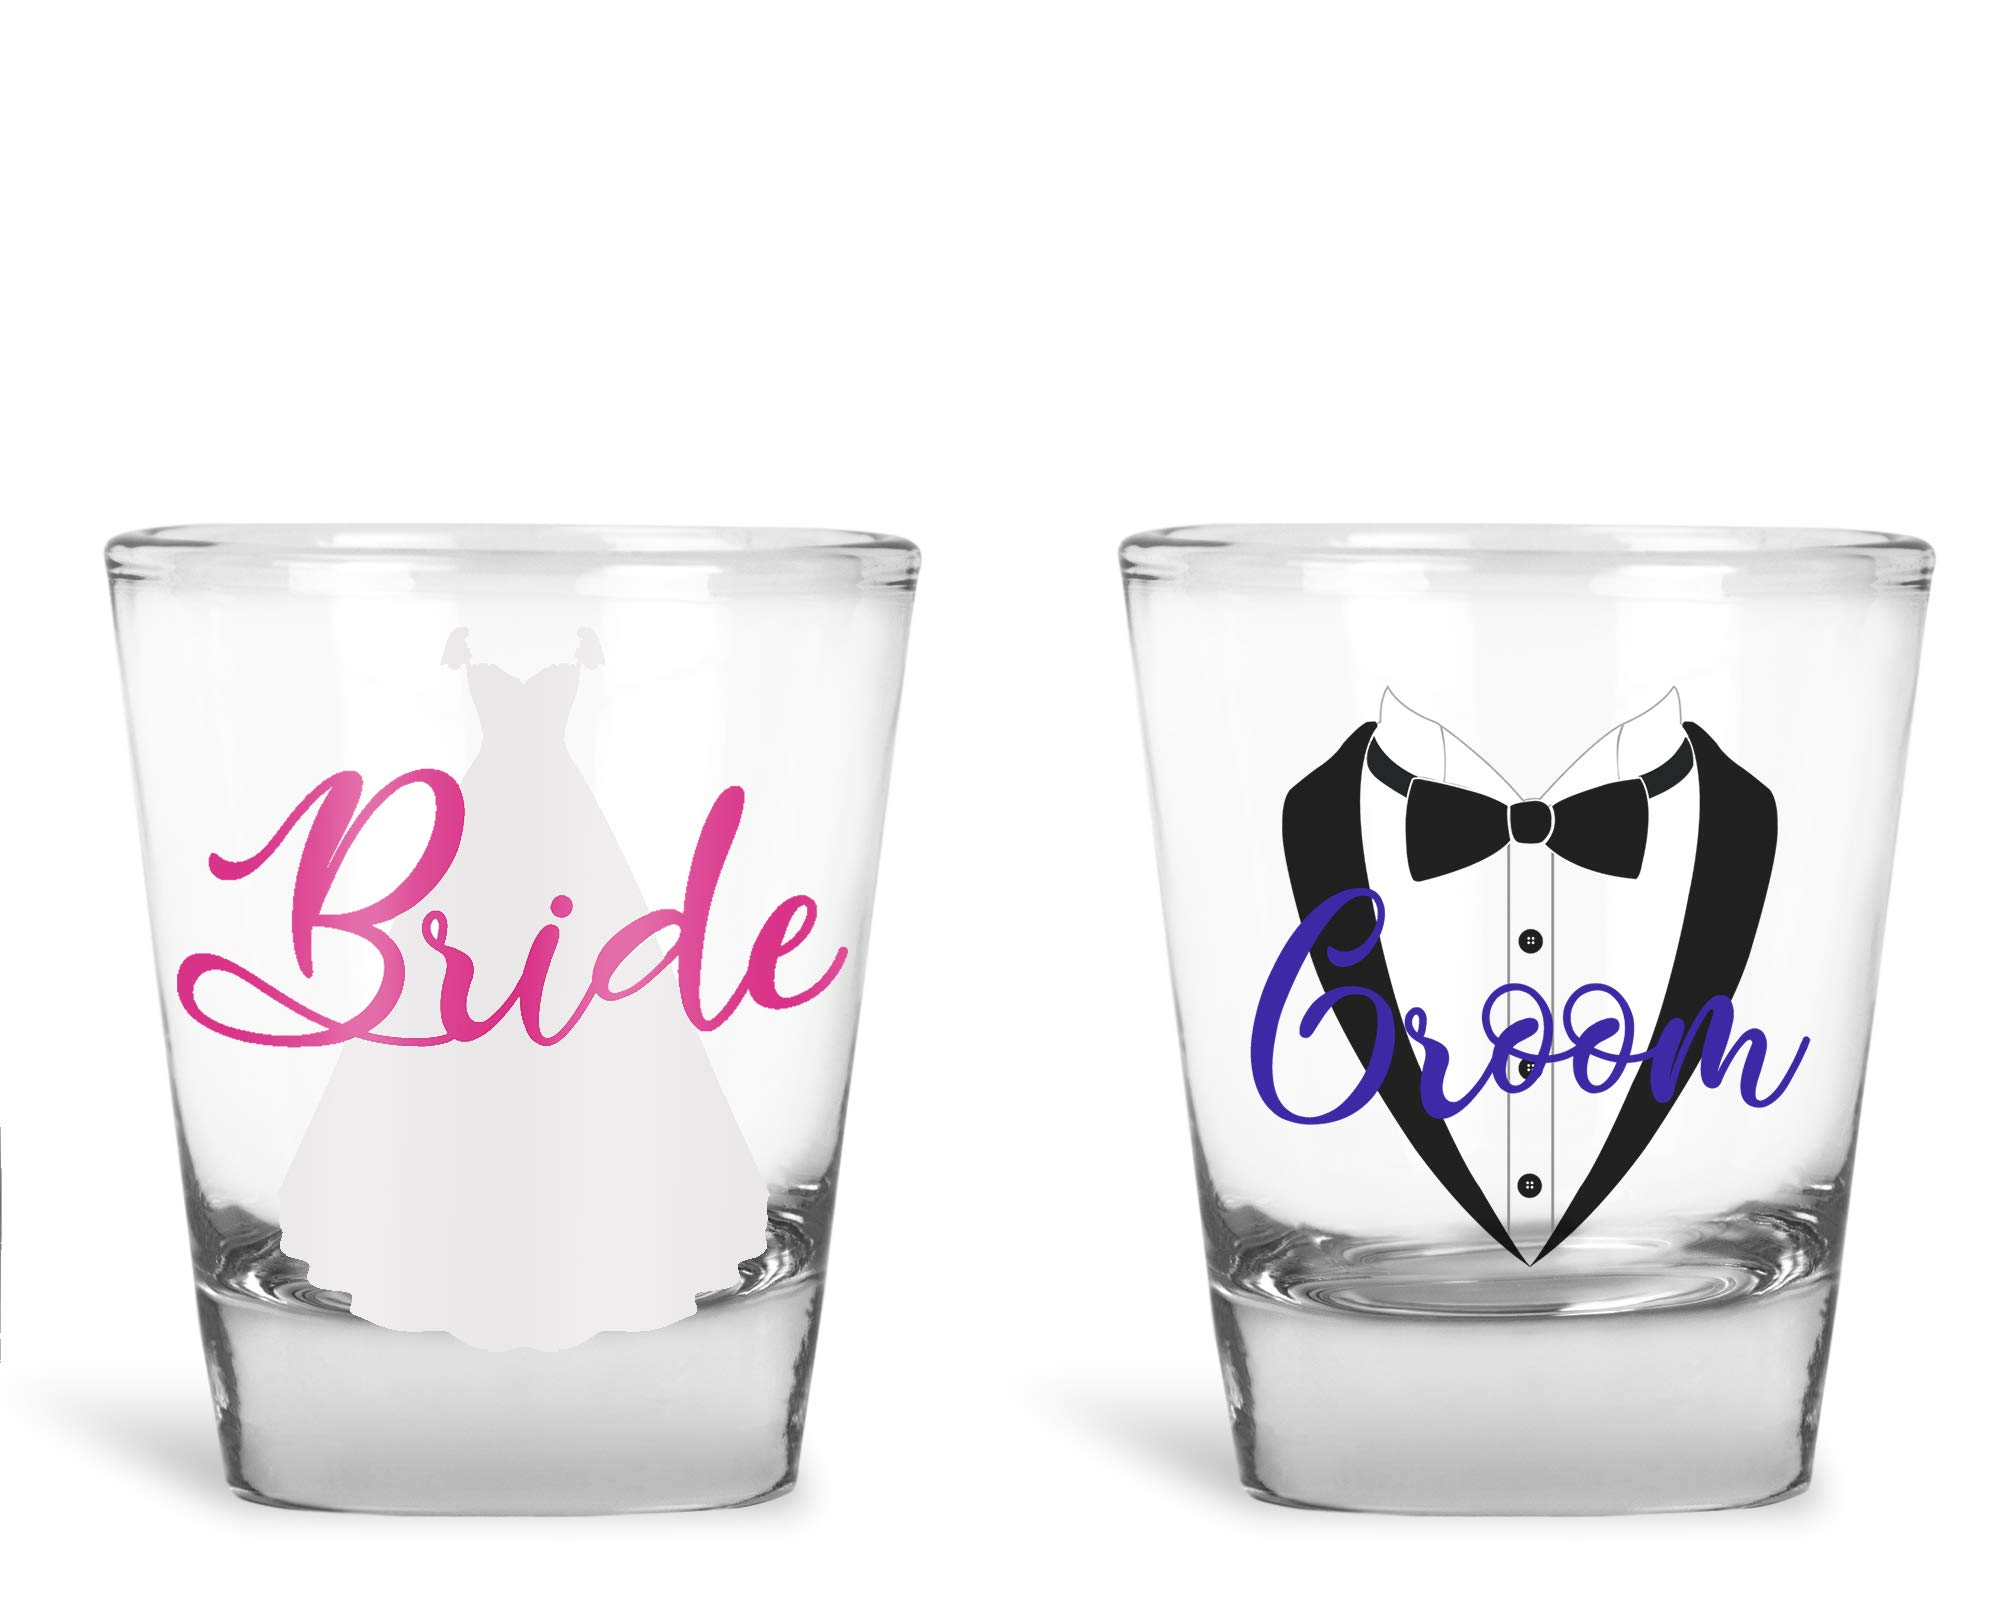 Wedding Shot Glasses - Bride and Groom Shot Glass - Groom Drinking Team Bachelor Party Wedding 2 oz (Bride and Groom) by AW Fashions